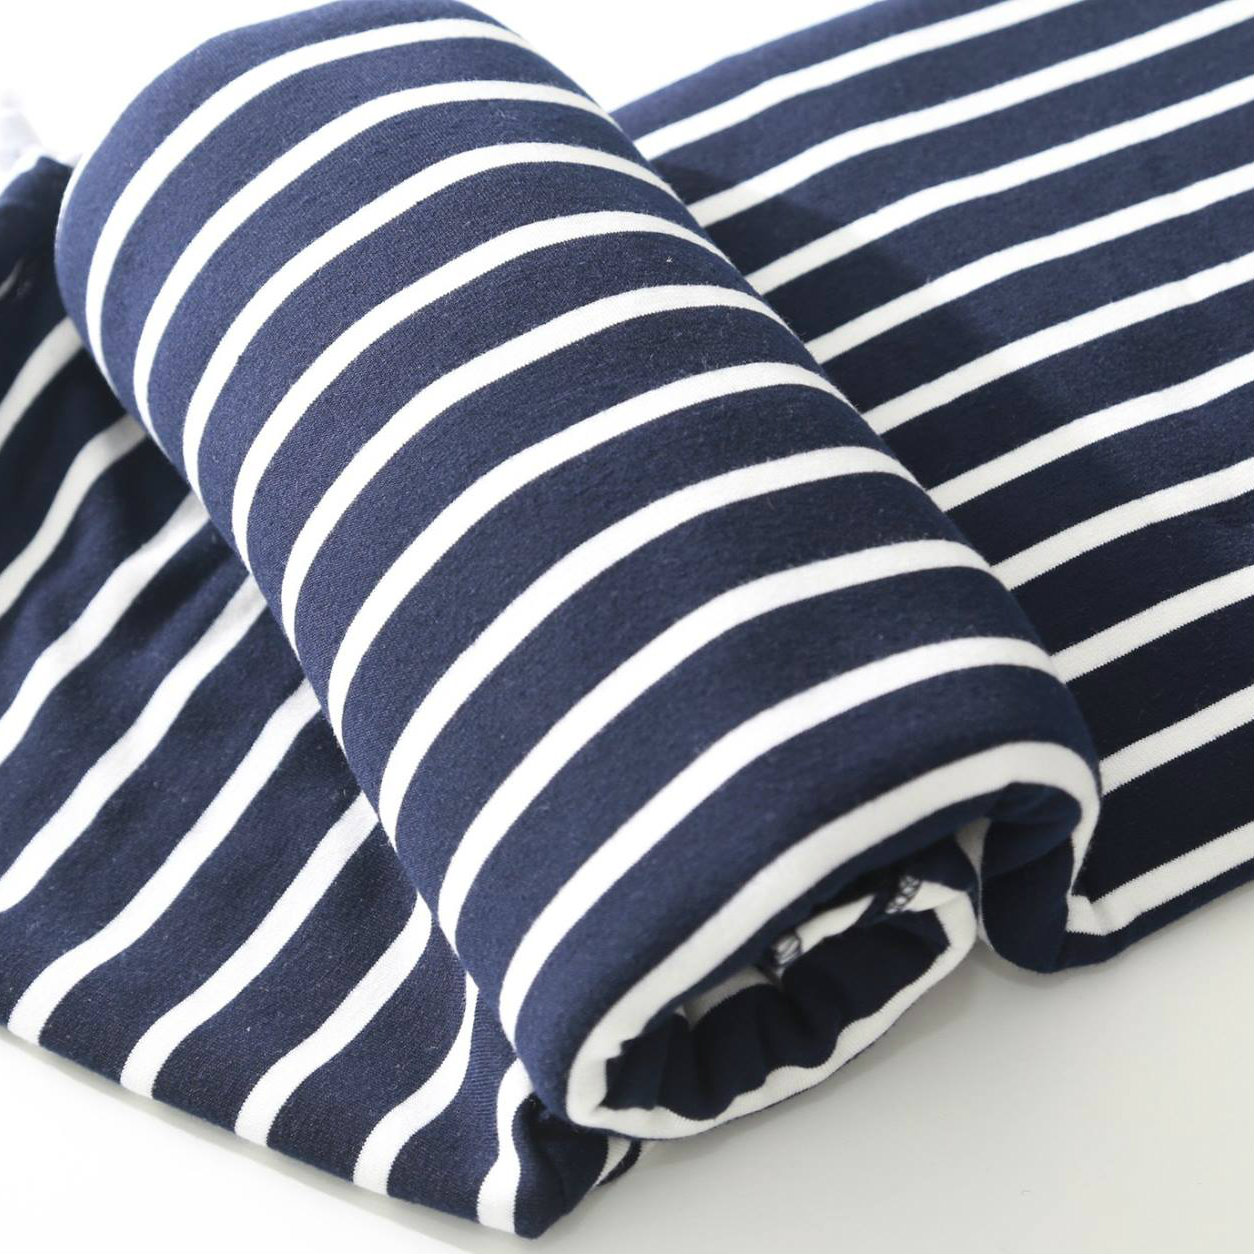 BabyUltra First Wrap Stretchy Wrap - Navy Stripes